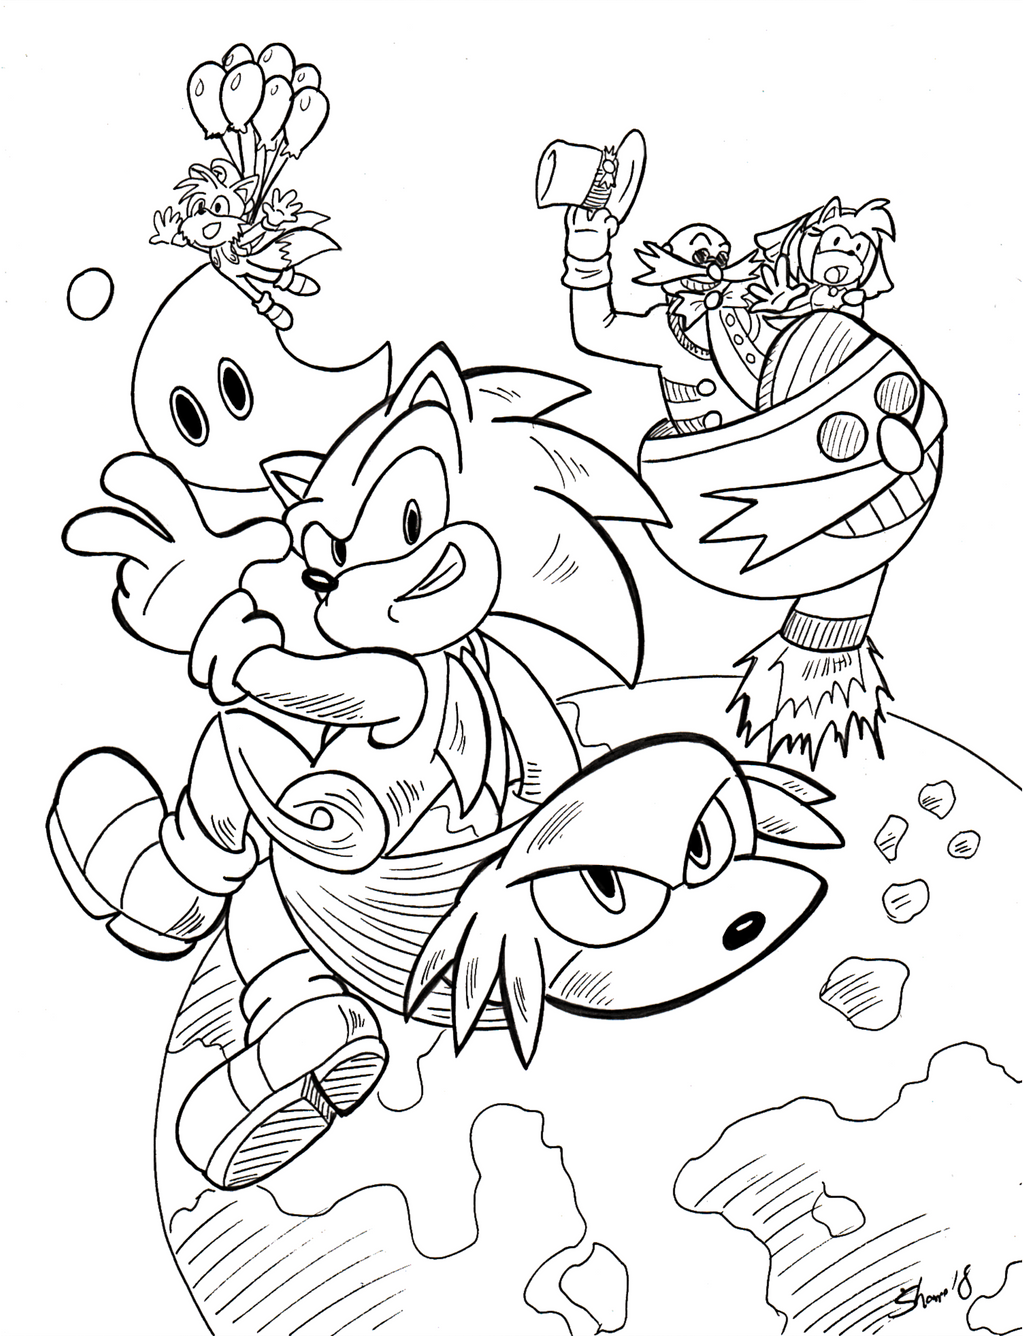 Sonictober - 03 - Alternate Universe by Sea-Salt